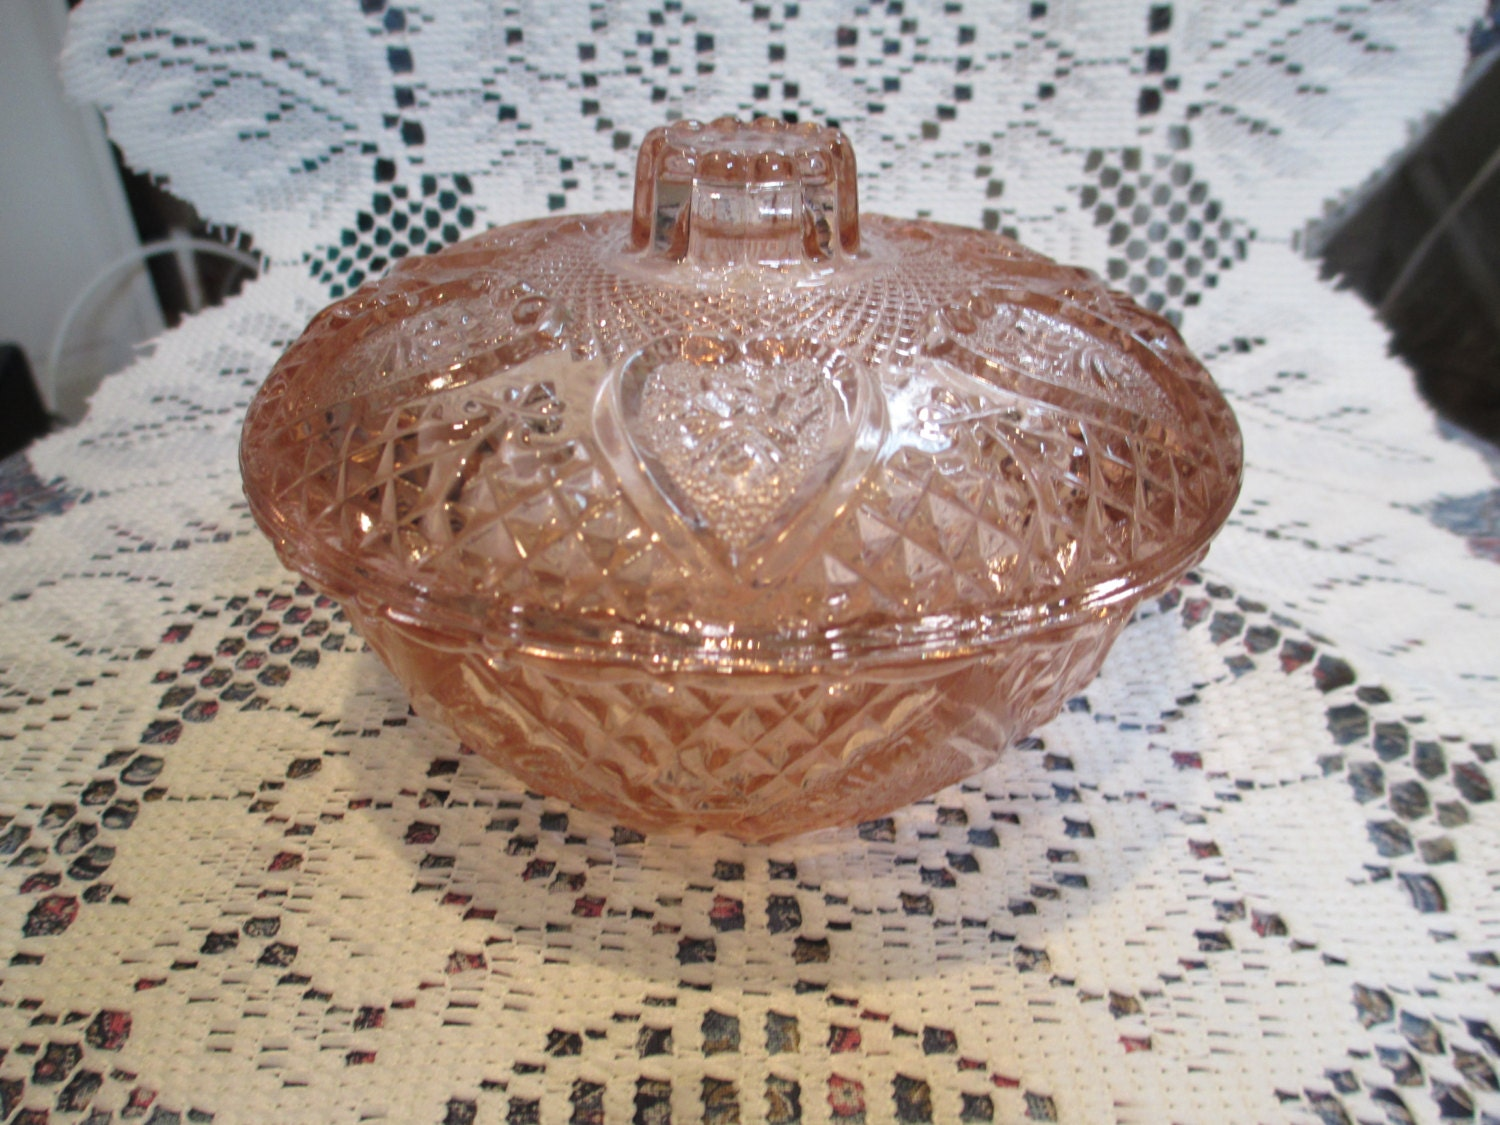 Pink Depression Glass Covered Candy Dish By Vintagelillyrose. Recovery Time For Lasik Eye Surgery. Makeup Classes Dallas Tx Attorneys In Georgia. No Fault Insurance California. Error 1053 Windows Server 2008. Excel Scheduling Software Dui Lawyers Seattle. Sba Business Loan Rates Websense Vs Barracuda. Mail Order Fulfillment Services. Mortgage Interest Rate Investment Property